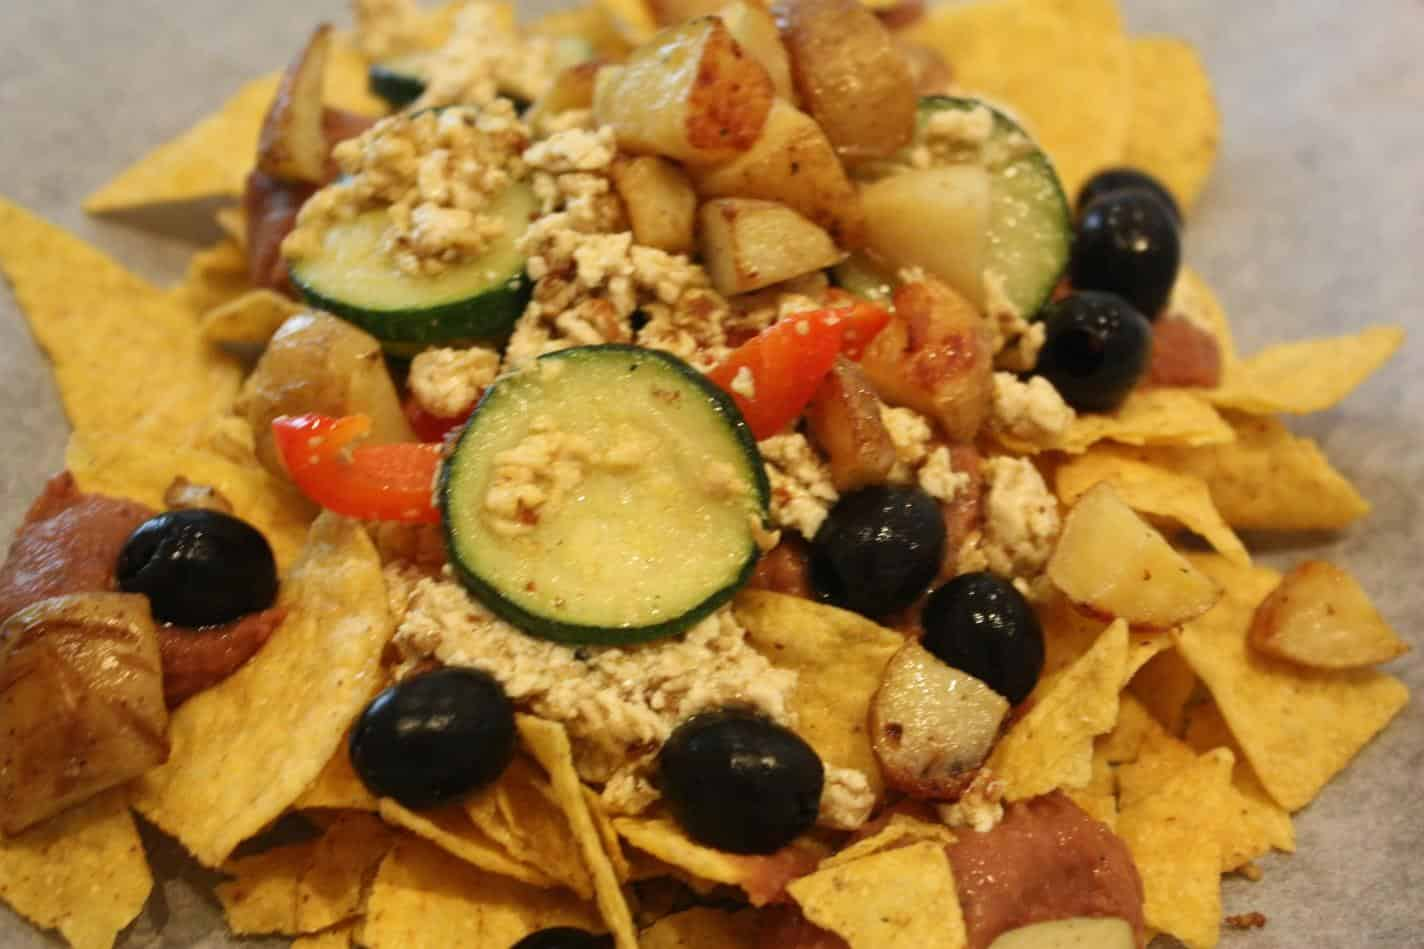 Breakfast nachos with vegan cheese